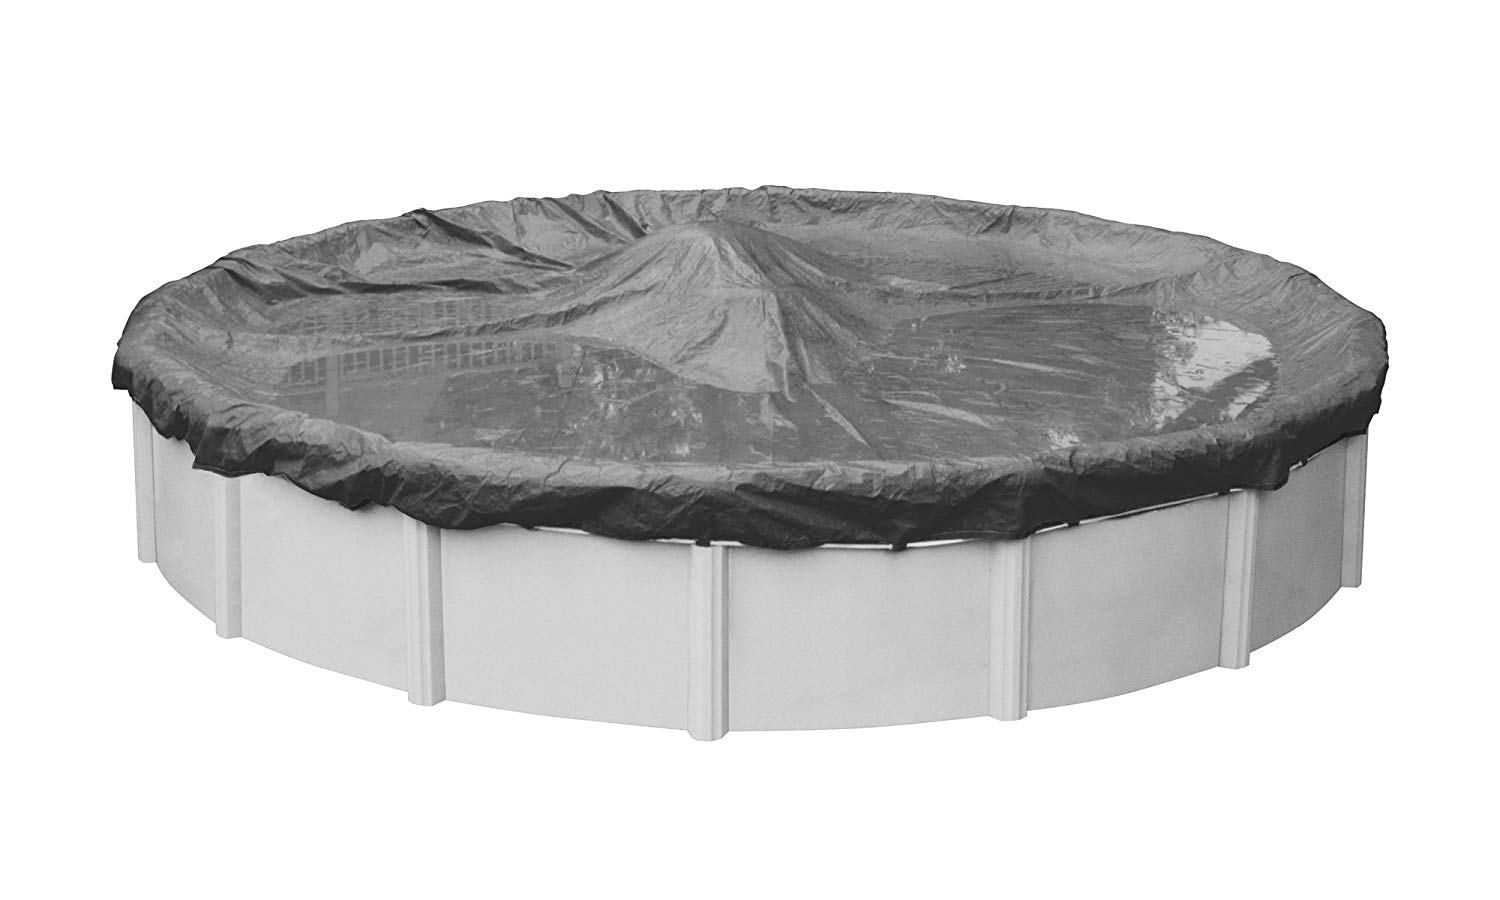 Pool Mate 5124-4-PM 20-Year Professional-Grade Winter Round Above-Ground Cover, 24-ft, Charcoal